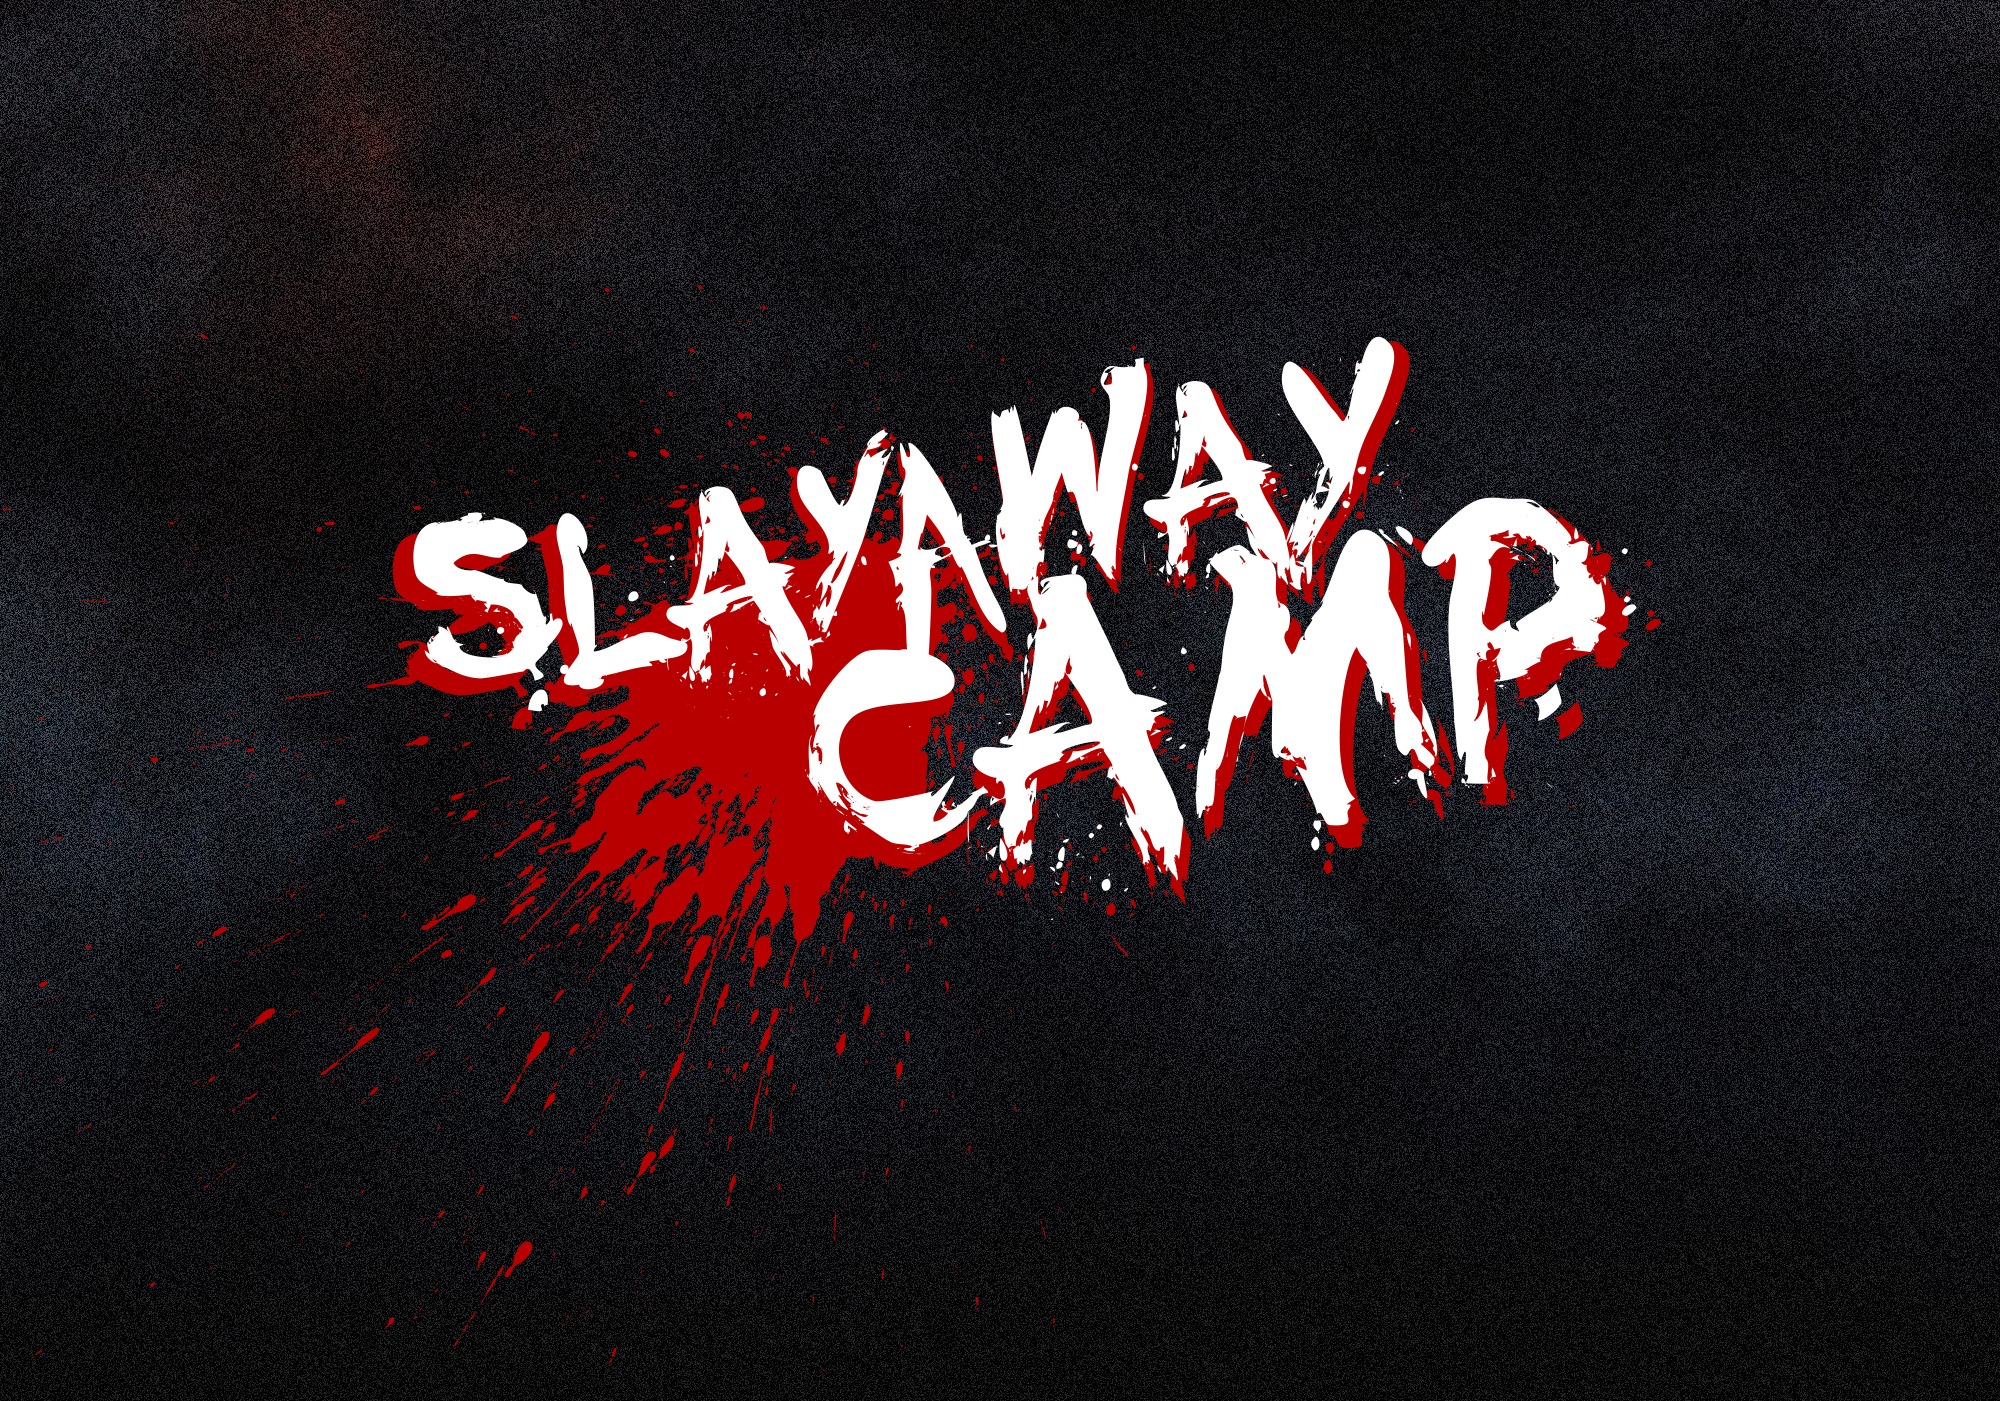 Ring in a bloody Valentine's Day with Slayaway Camp, a brutal slide-puzzler